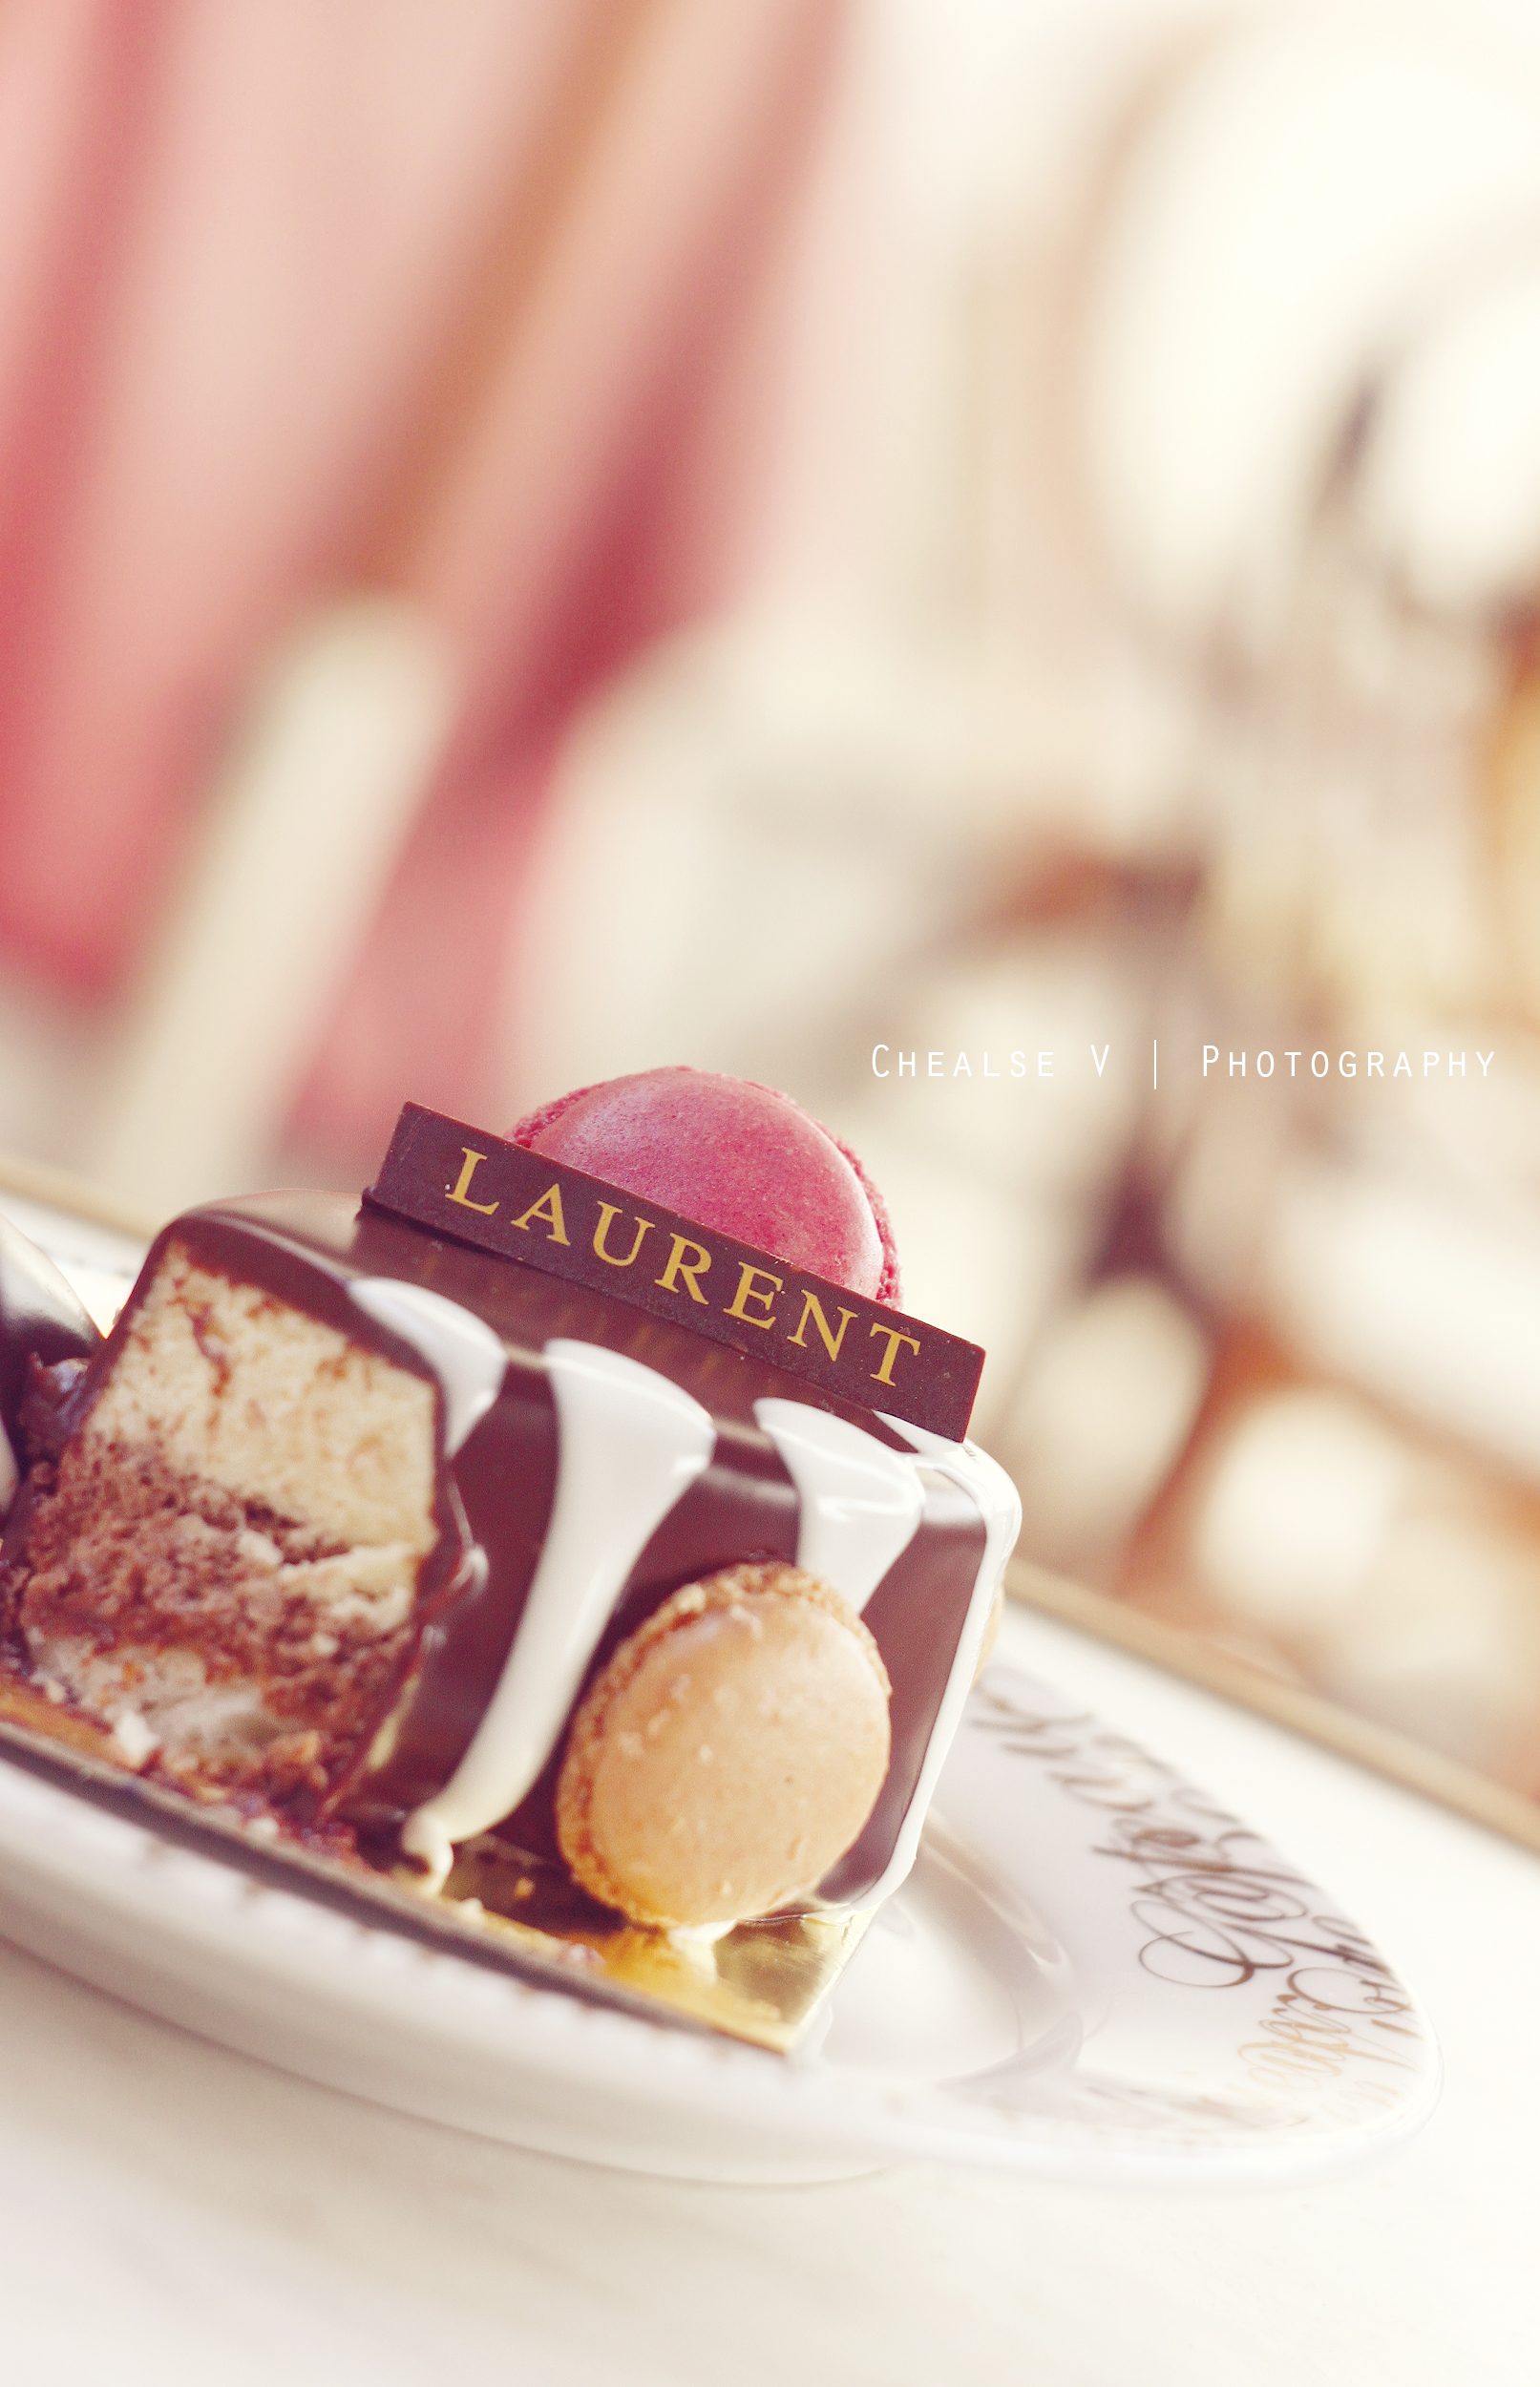 Laurent Bakery by chealse